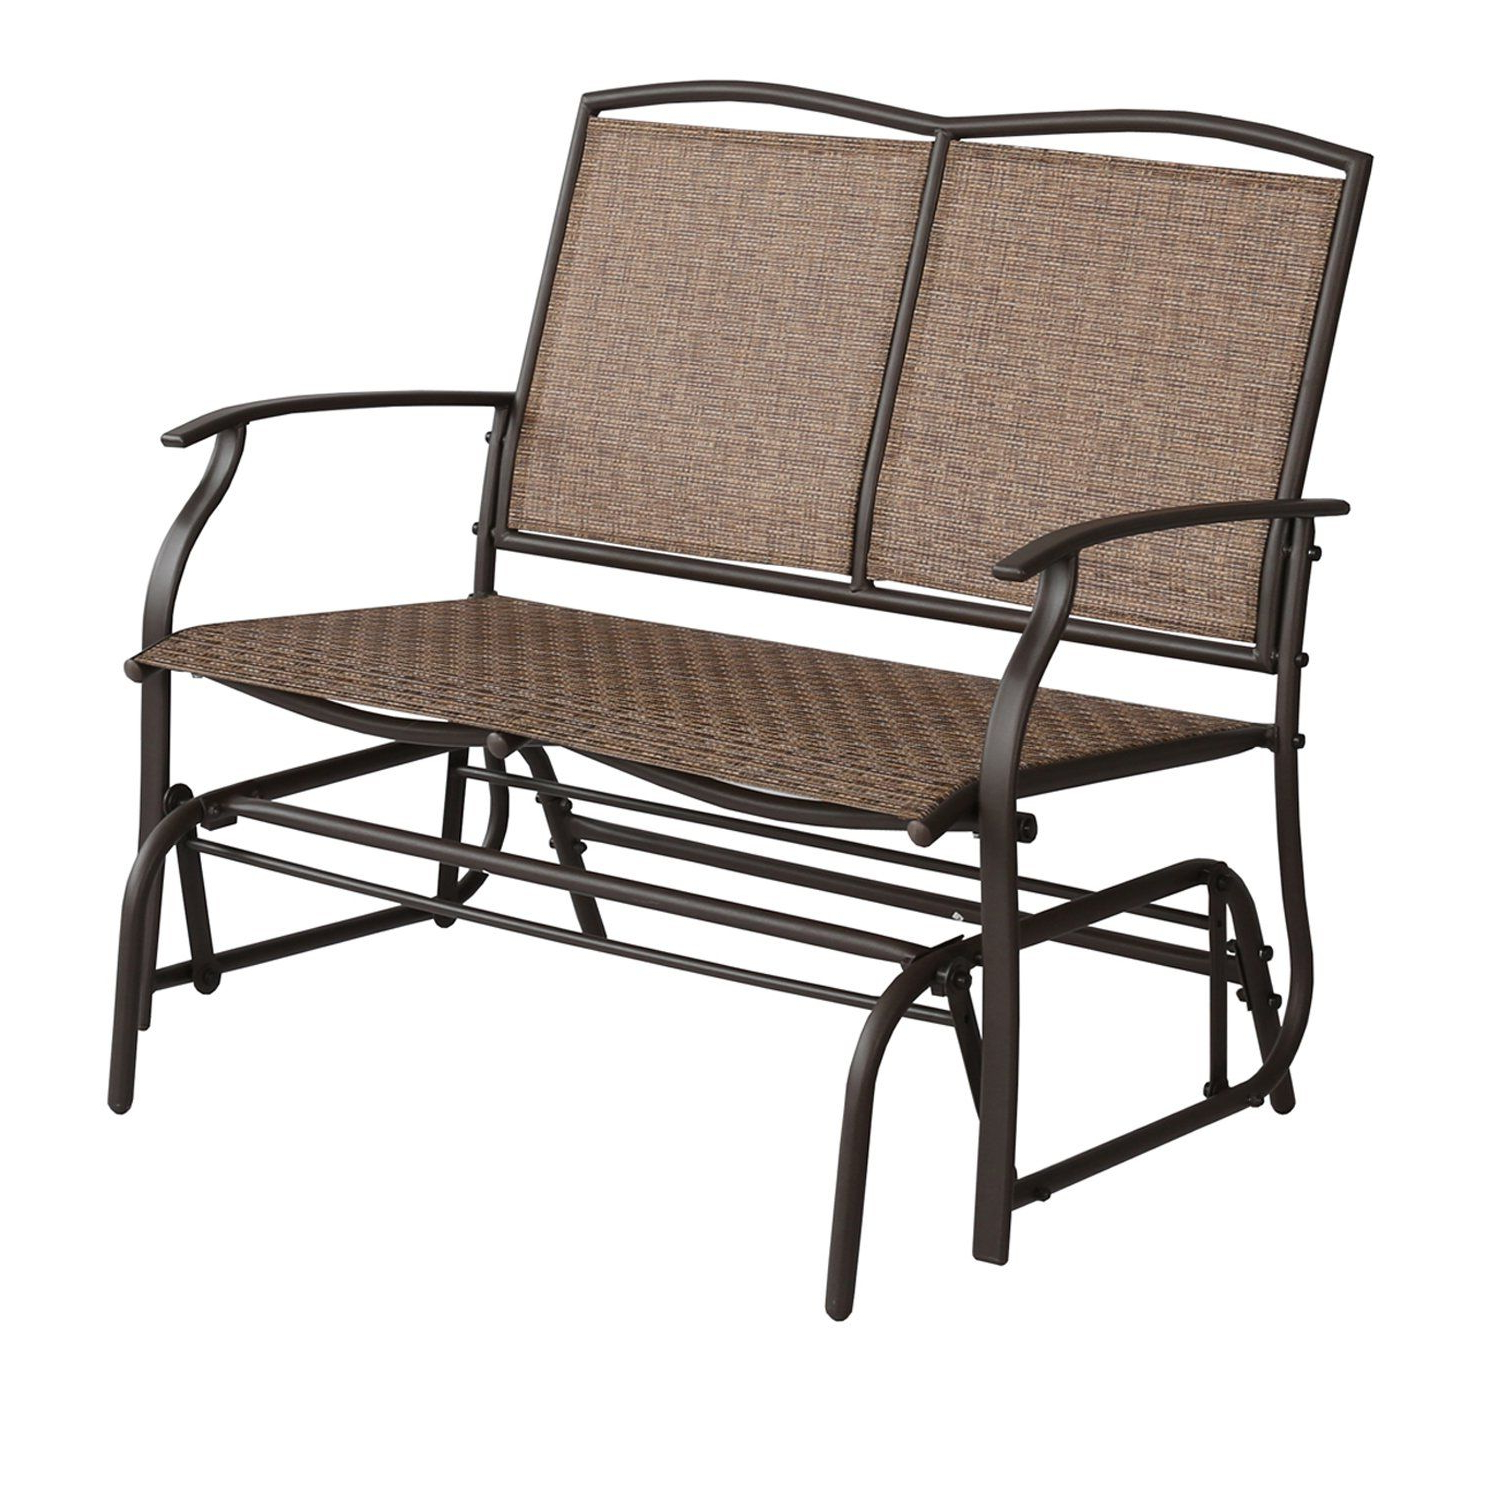 2 Person Loveseat Chair Patio Porch Swings With Rocker In 2020 Patio Tree Patio Swing Glider Bench For 2 Person All (View 18 of 25)